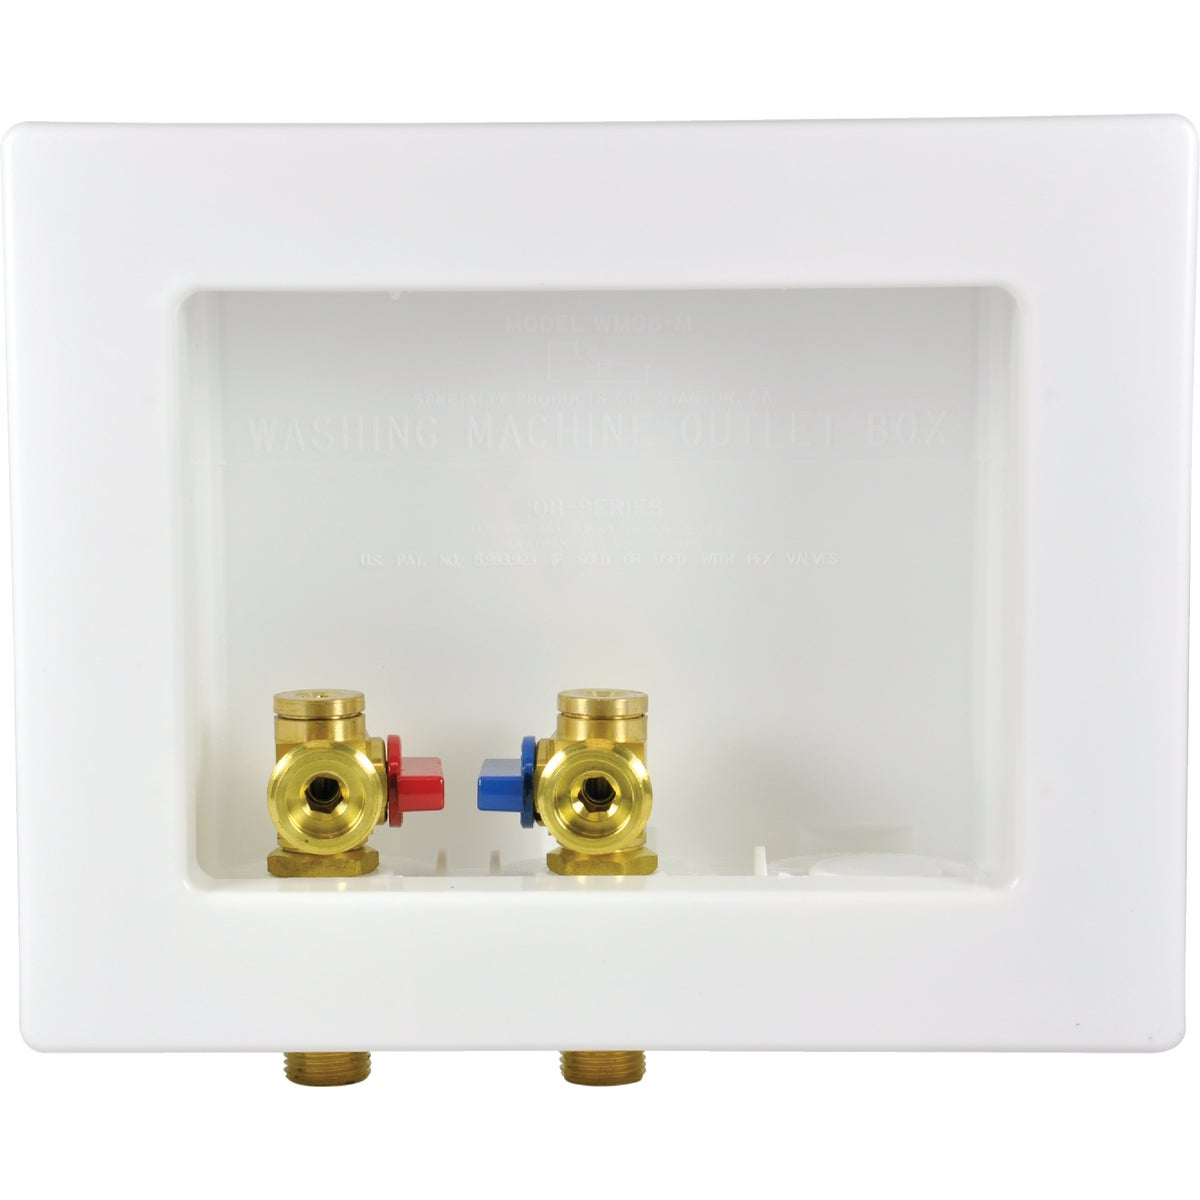 LEVER OUTLET BOX - OB-405 by Danco Perfect Match